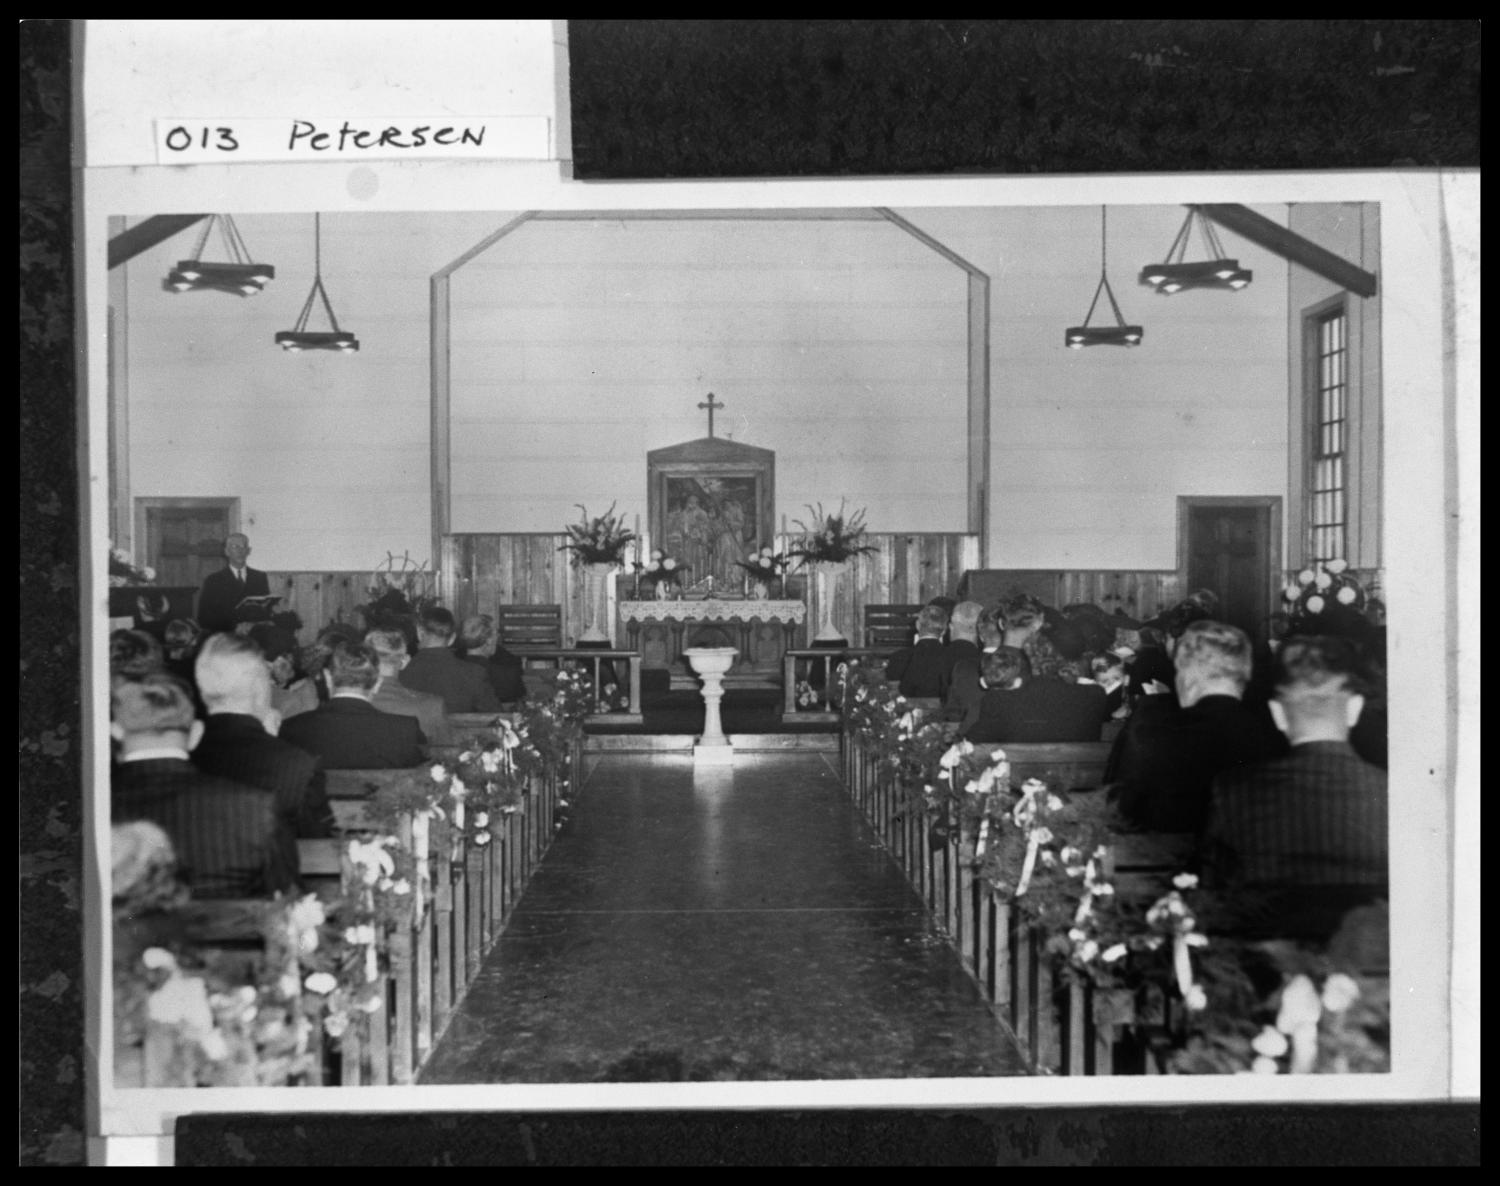 [Interior of Danevang Lutheran Church], Copy negative of a black and white photograph of the Danevang Lutheran Church interior. Two columns of wooden pews that have decorative garland attached to them lead up to an altar at which a small baptismal fount sits between two banisters. Floral arrangements and a painting with a cross atop its frame adorn the center of the altars alcove. Members of the congregation fill the pews. Light fixtures hang from the interiors rafters above the congregation.,